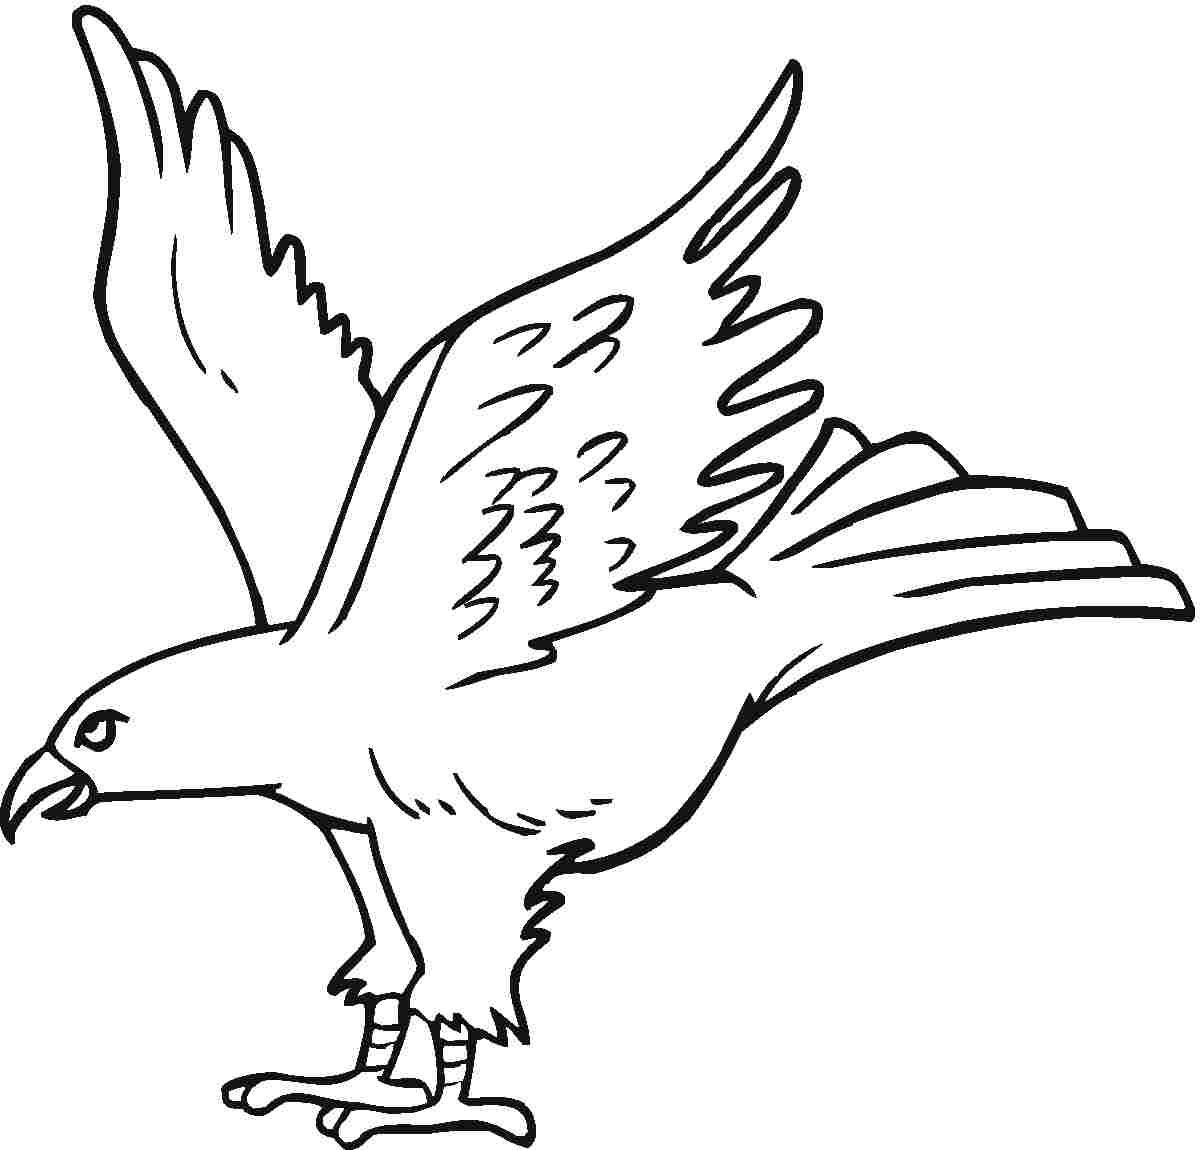 Eagle Coloring Pages Classy Httpssmediacacheak0.pinimgoriginalsc0. Design Decoration